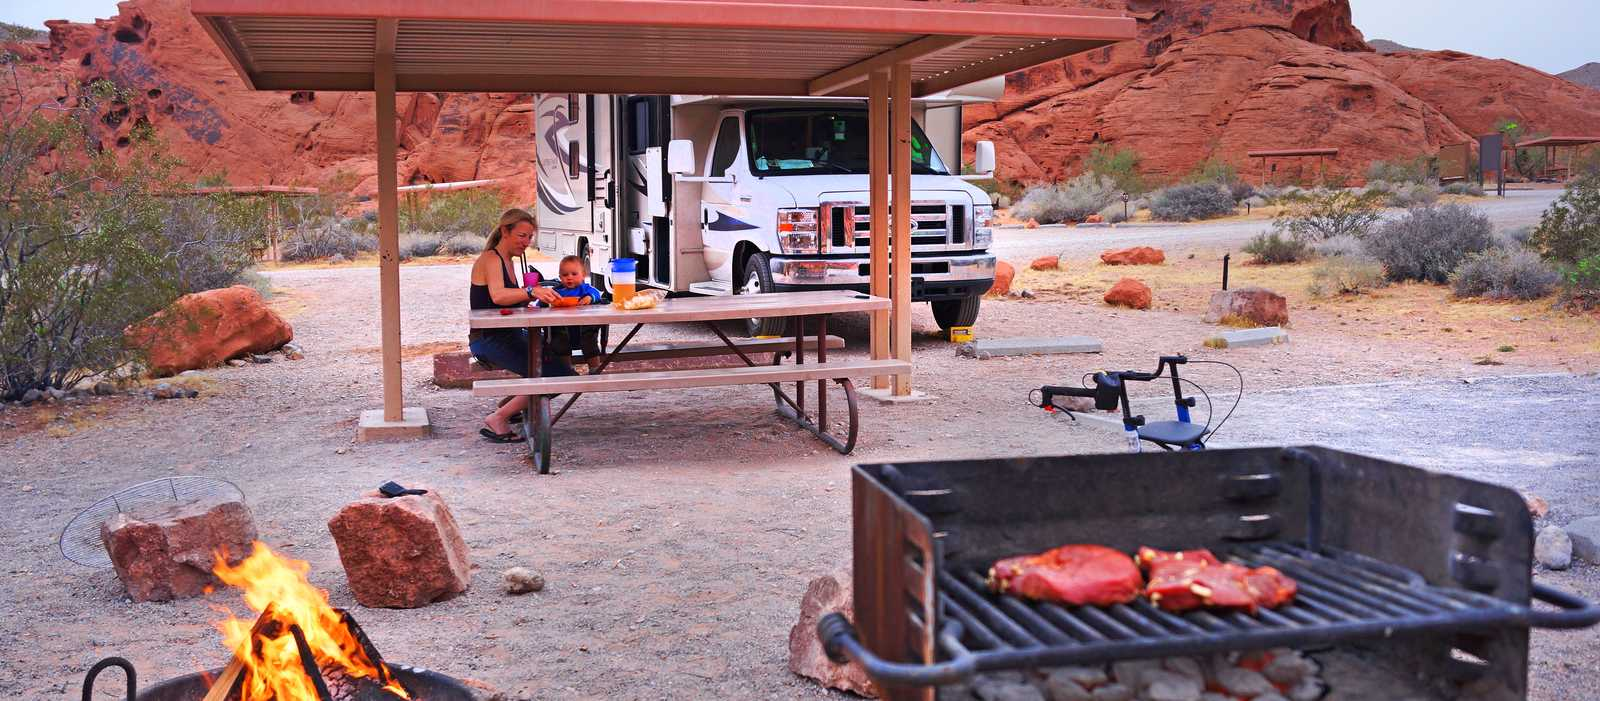 Campground im Valley of Fire State Park